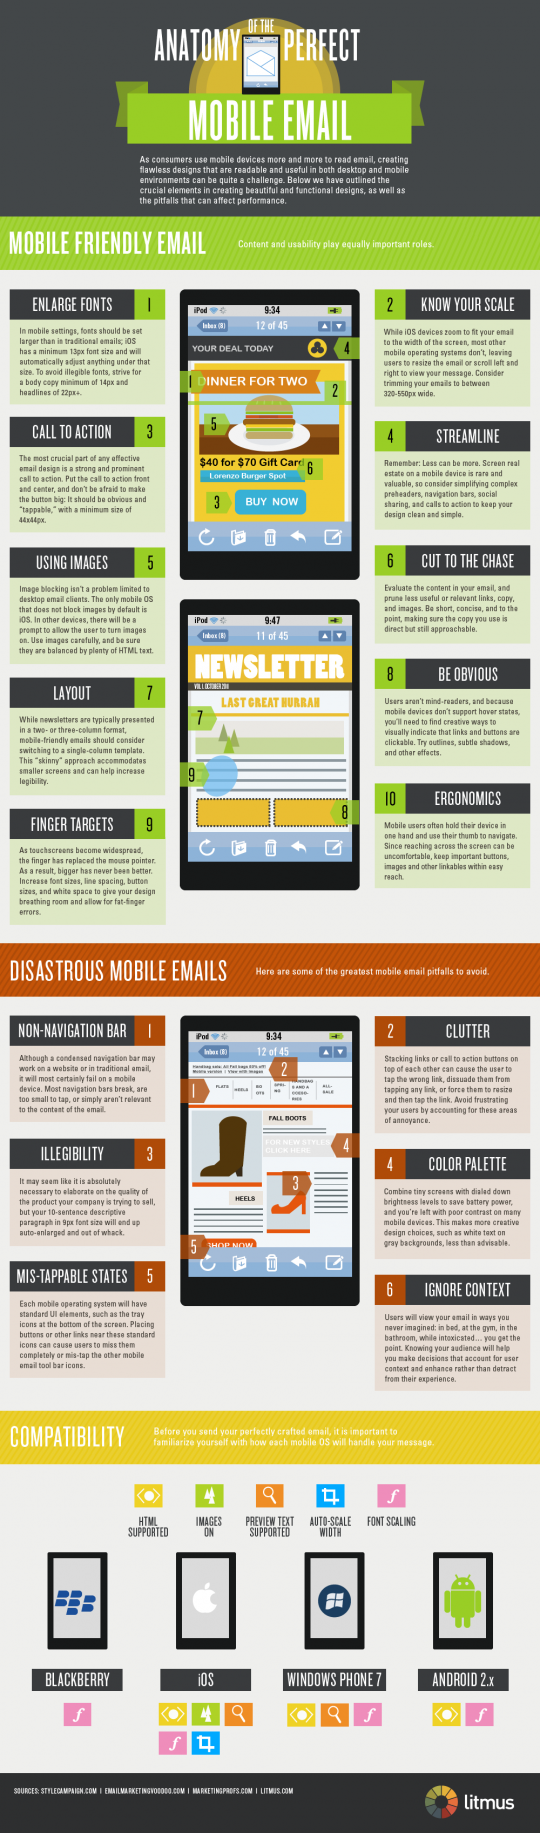 anatomy of a mobile email